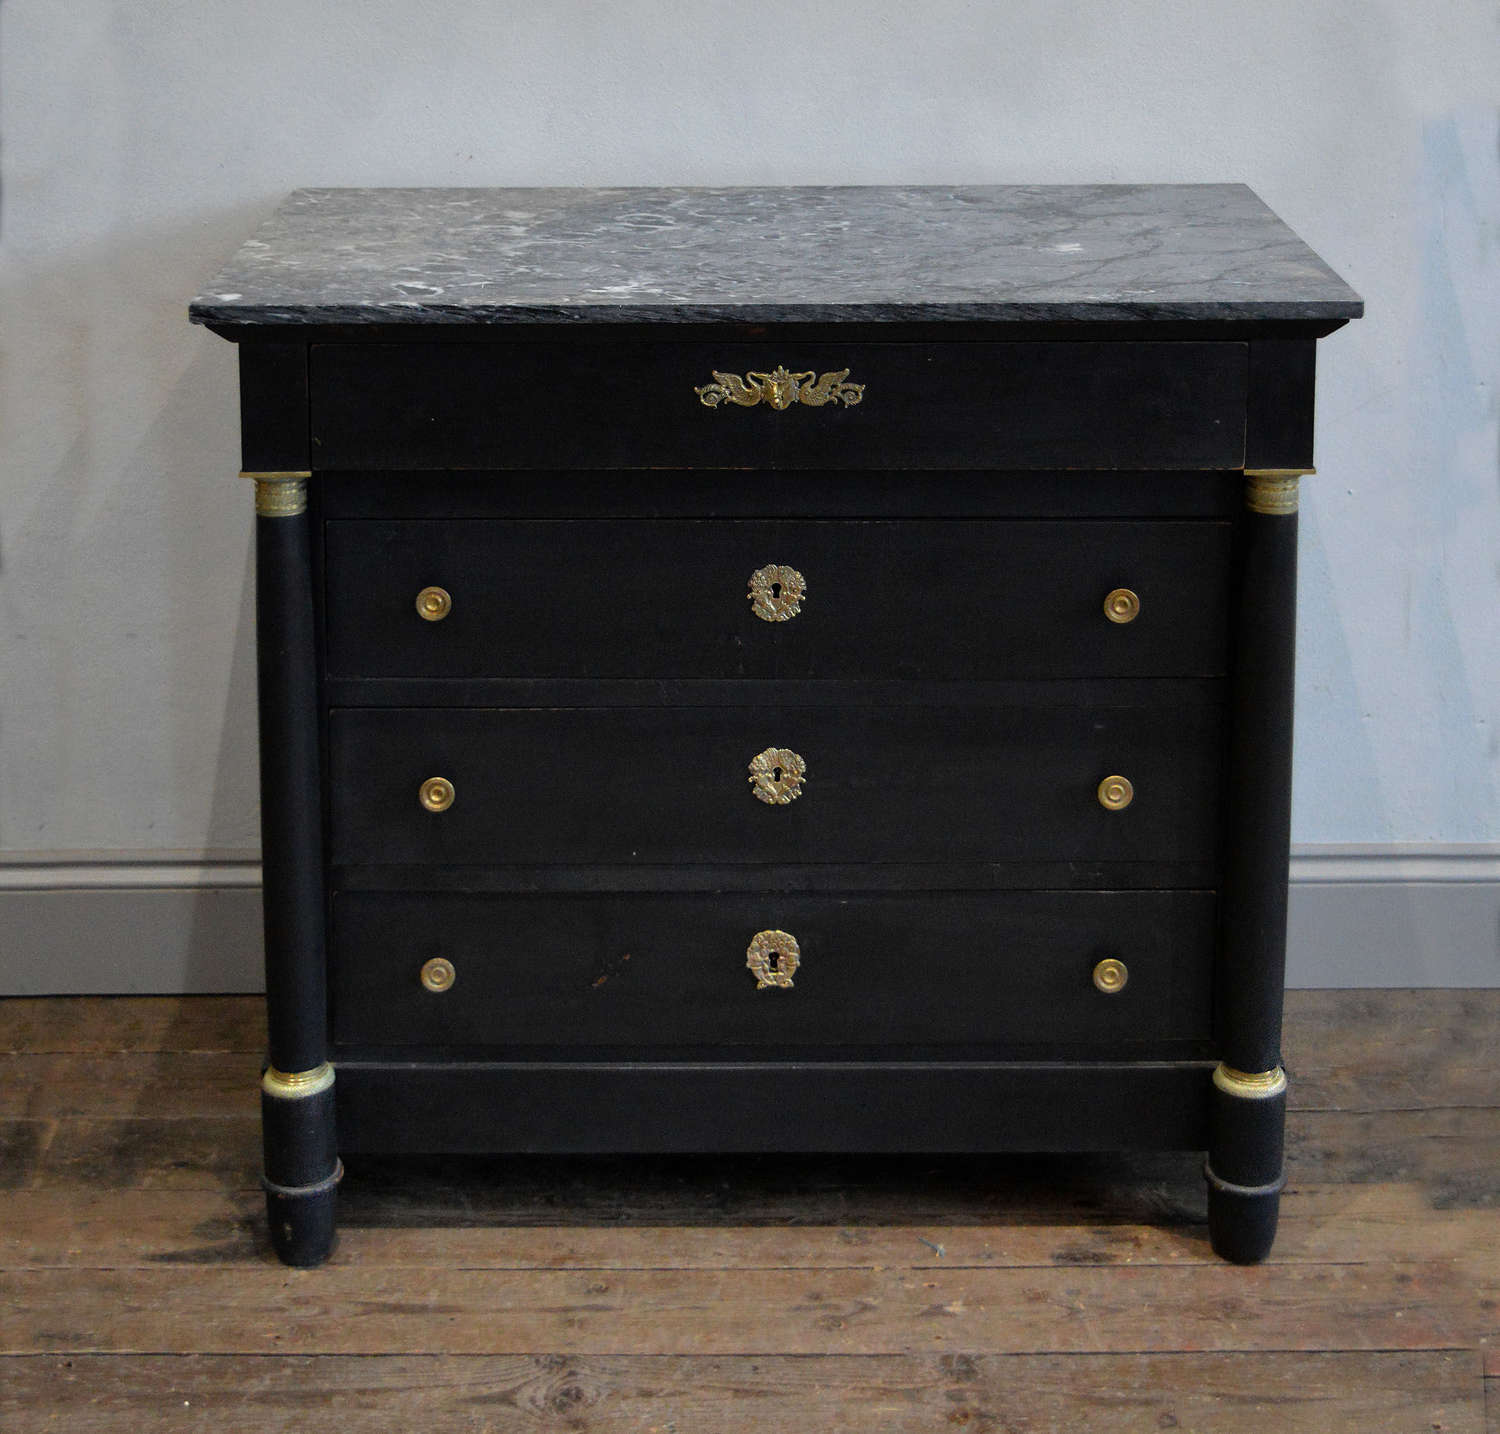 19th Century Empire style commode